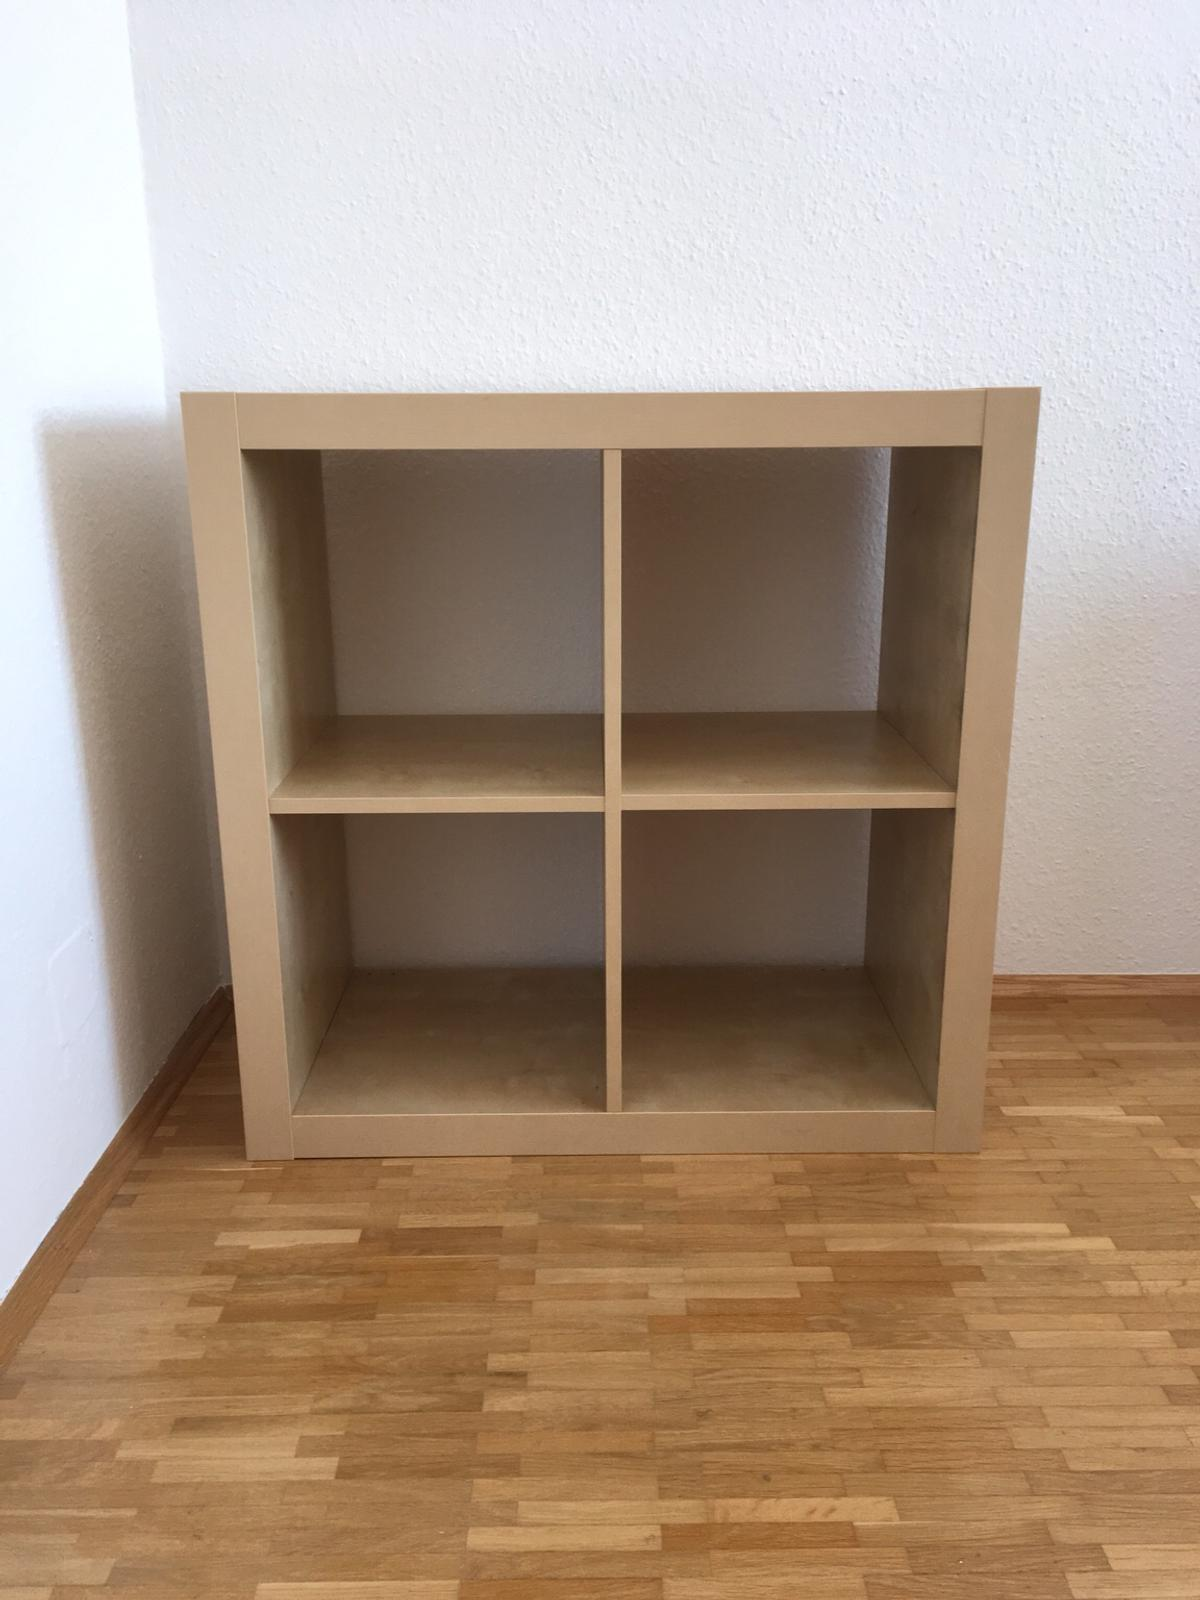 Regal Birke Regal Birke 4er (expedit / Kallax / Ikea) In 89073 Ulm For €15.00 For Sale | Shpock